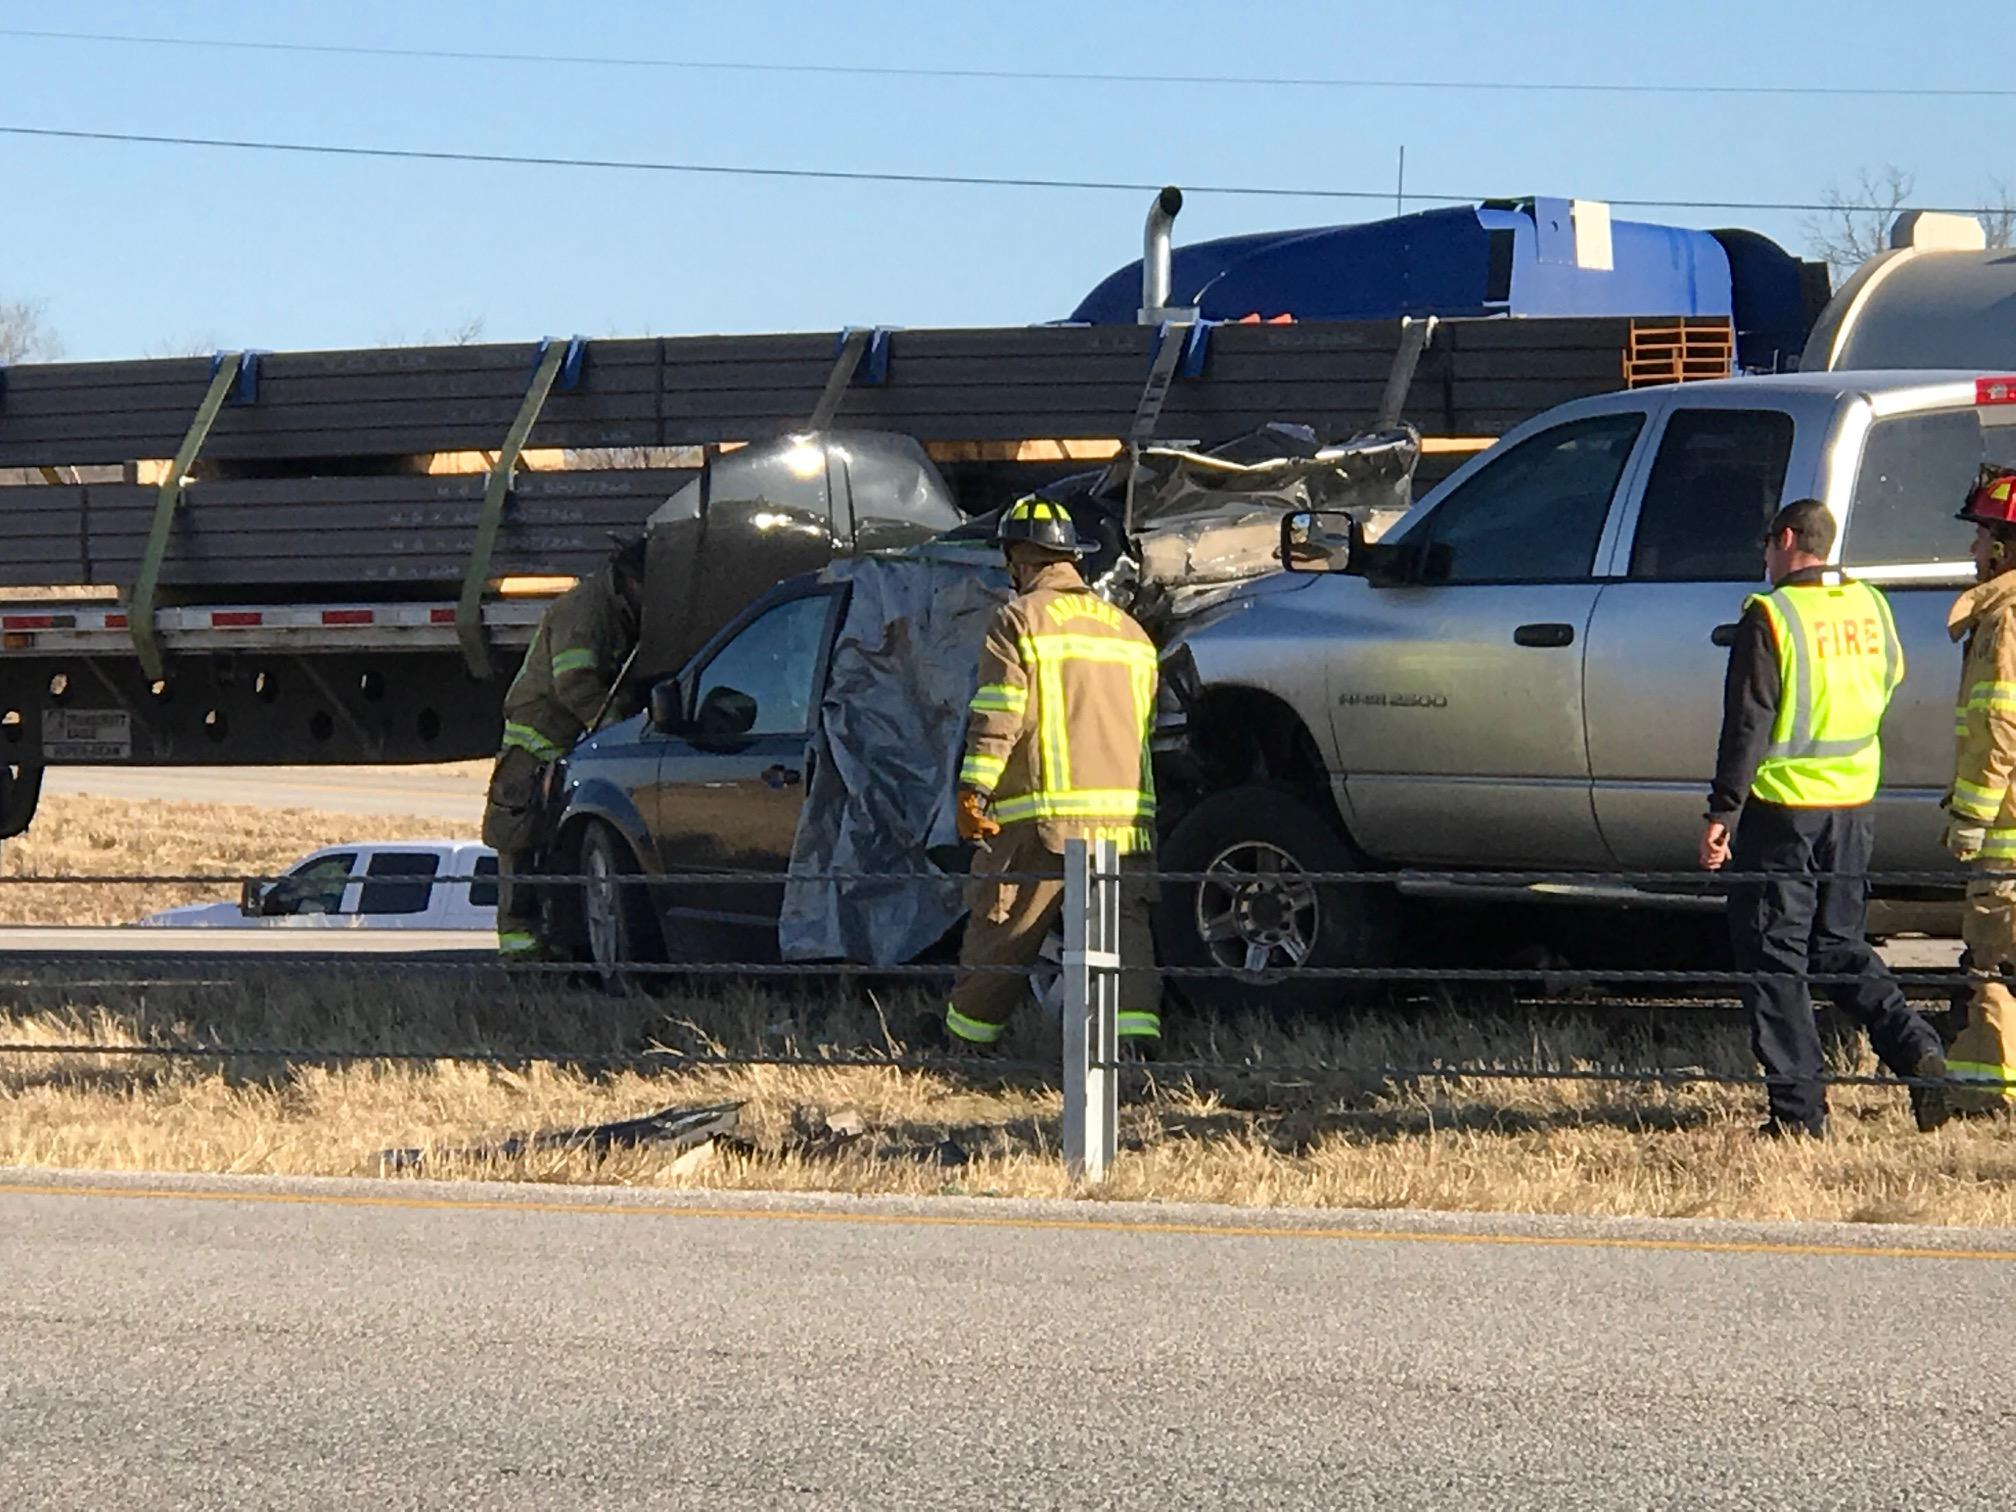 At least one person is dead after an accident involving four vehicles and an 18-wheeler on westbound I-20 in Abilene.